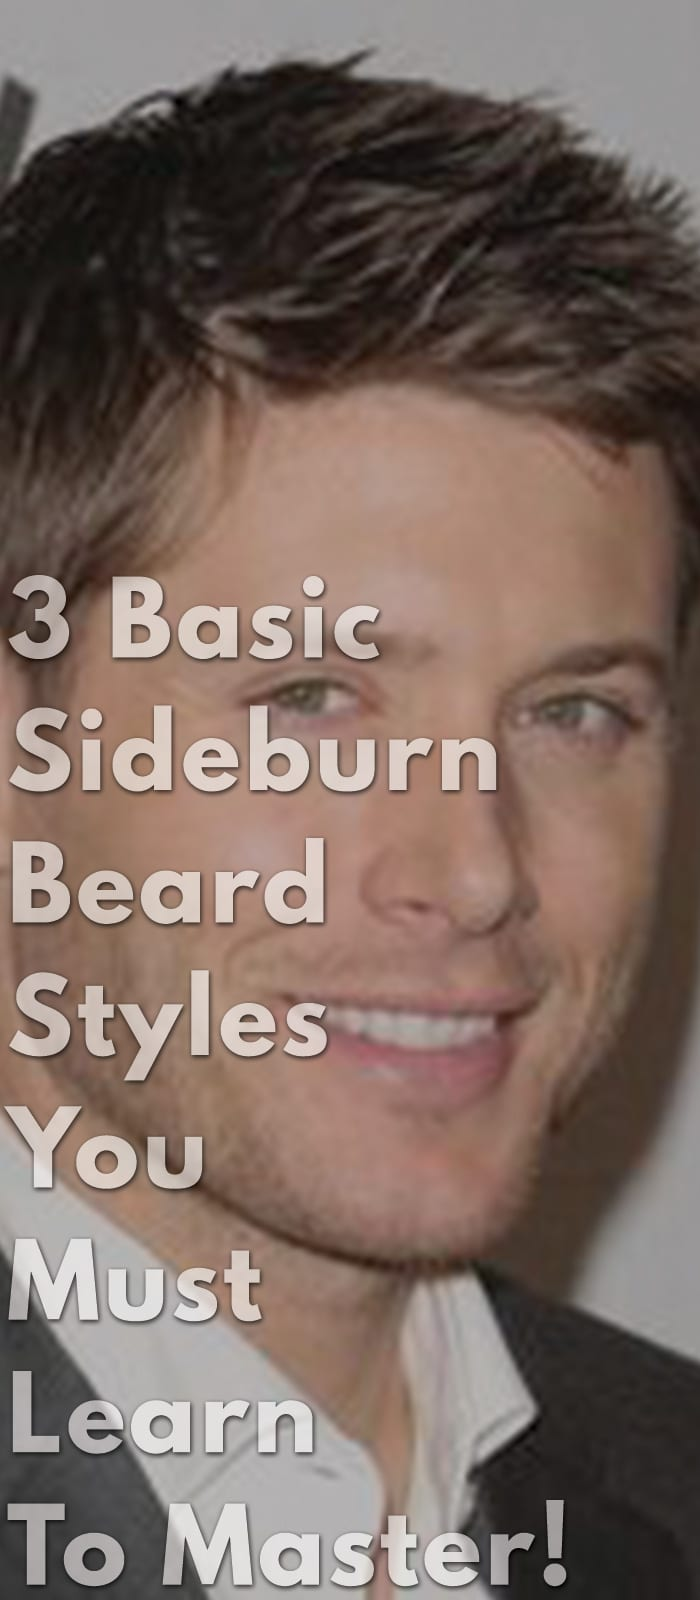 3-Basic-Sideburn-Beard-Styles-You-Must-Learn-To-Master!.